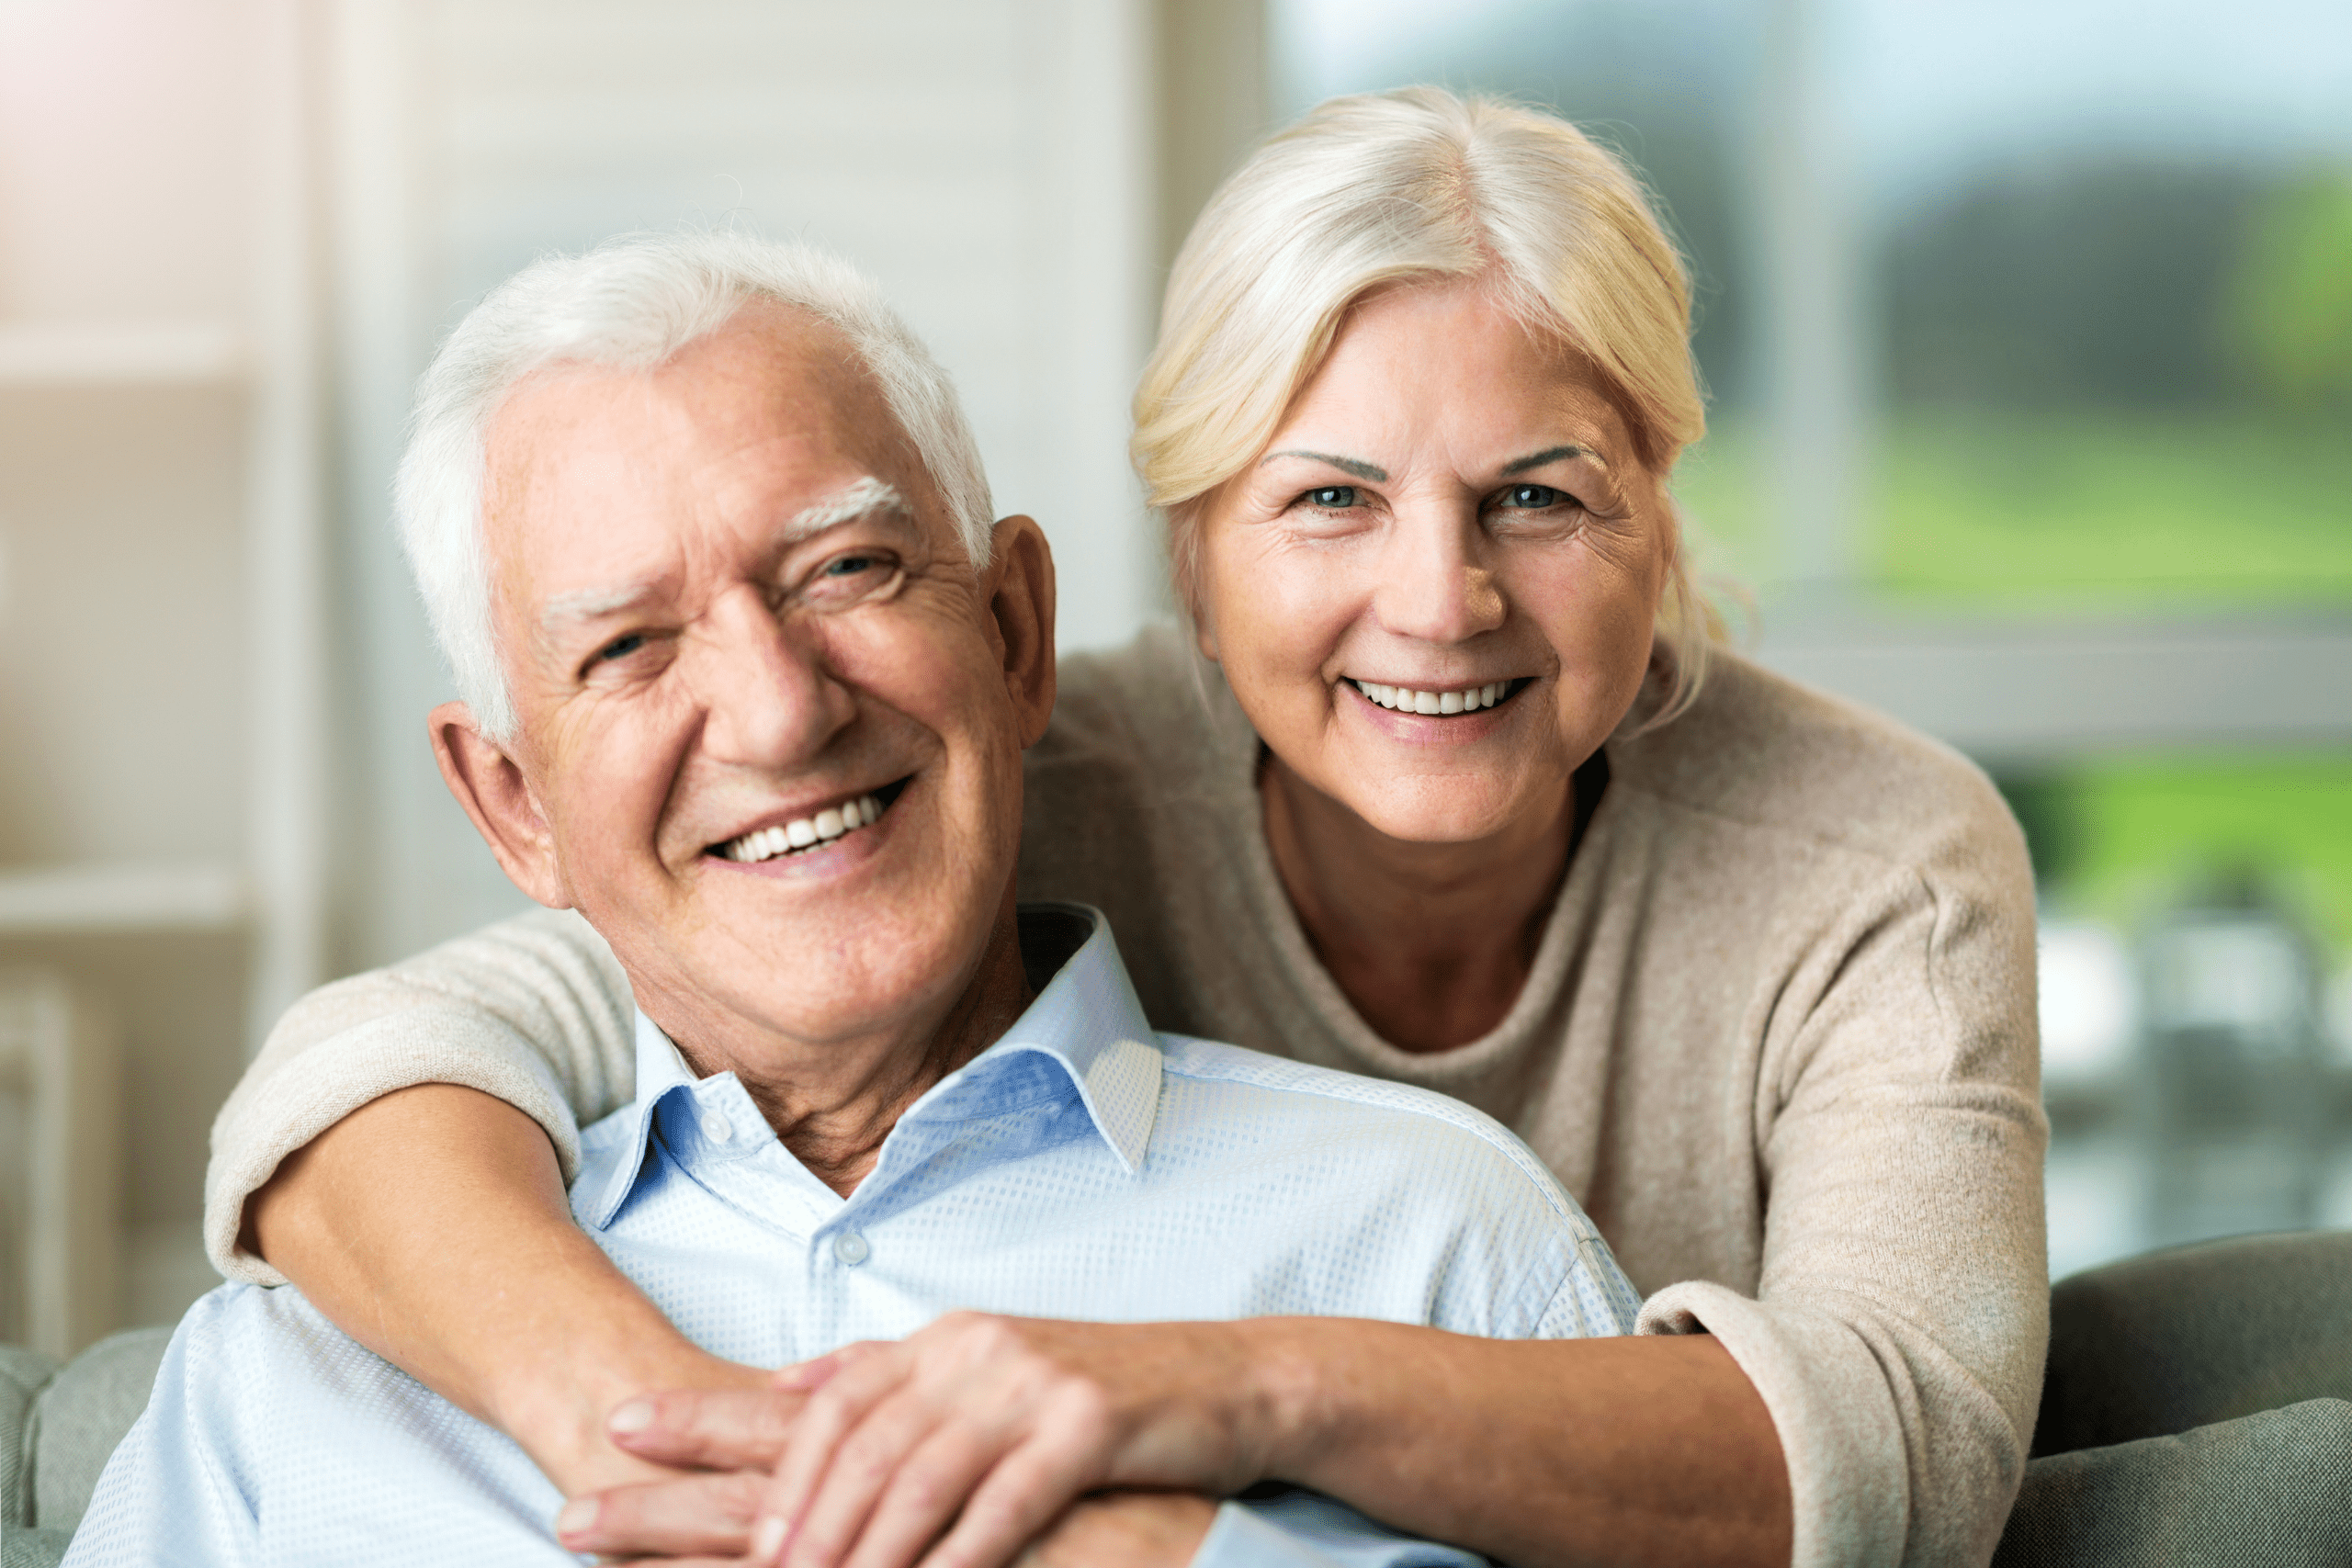 Reverse Mortgage Loan: What Is It And All You Need To Know About It